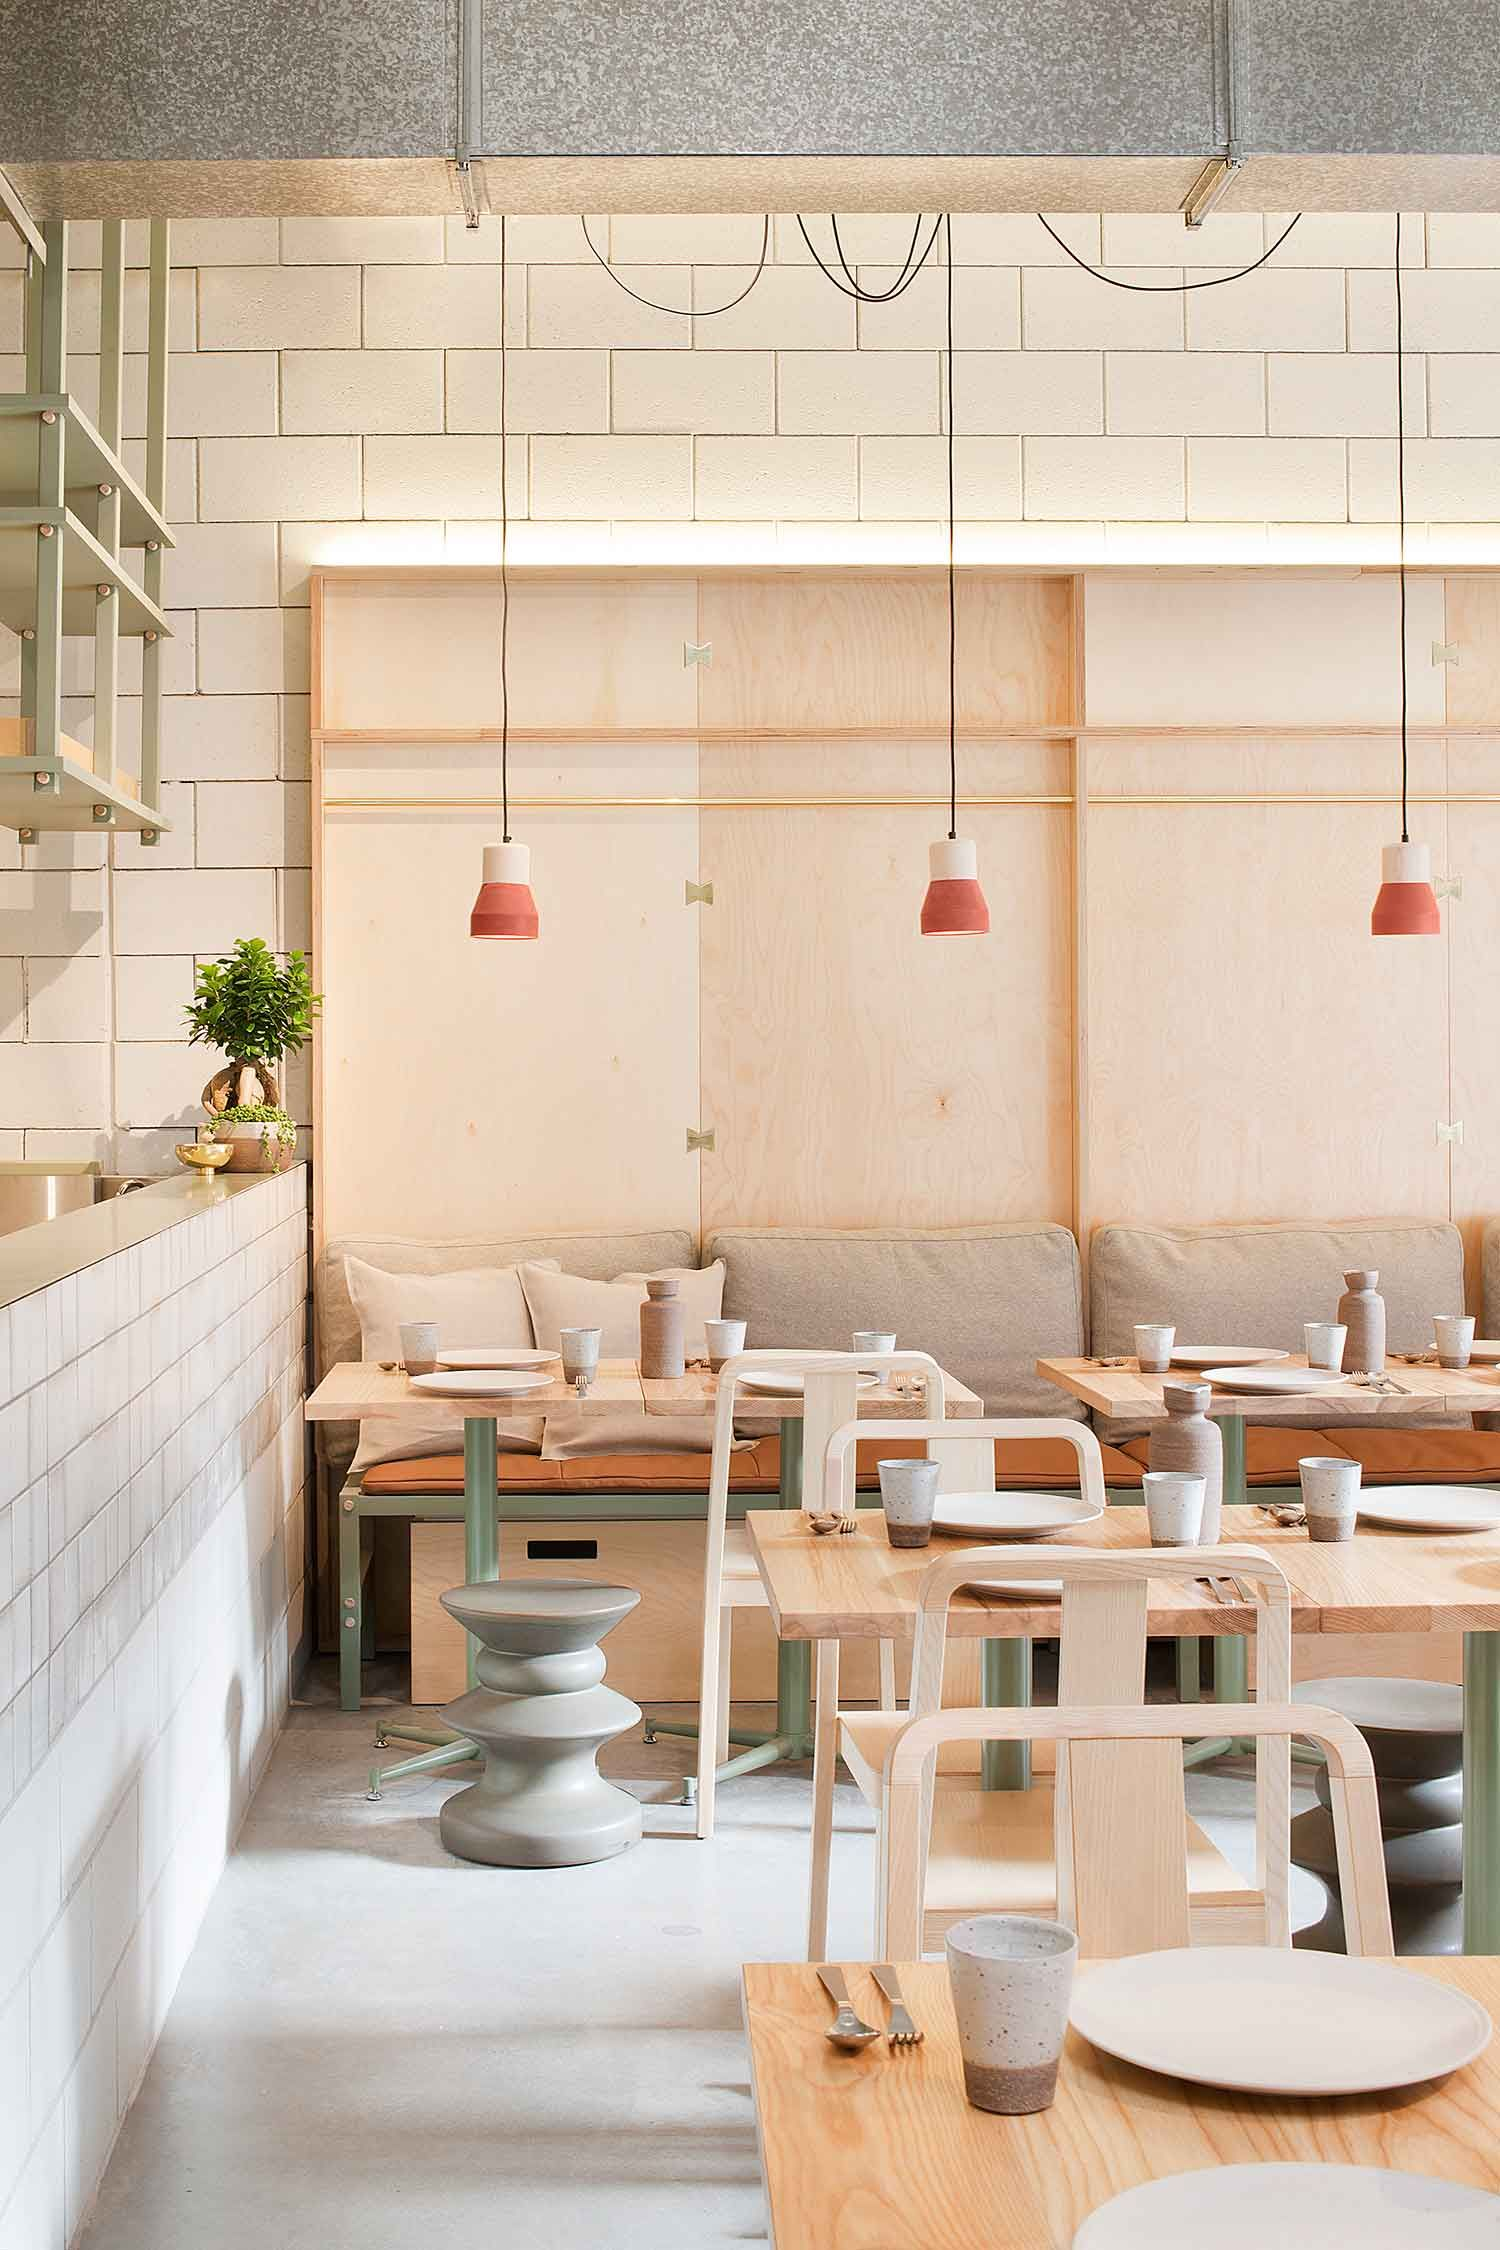 hecker guthrie: ruyi dumpling & wine bar, melbourne | wine bars